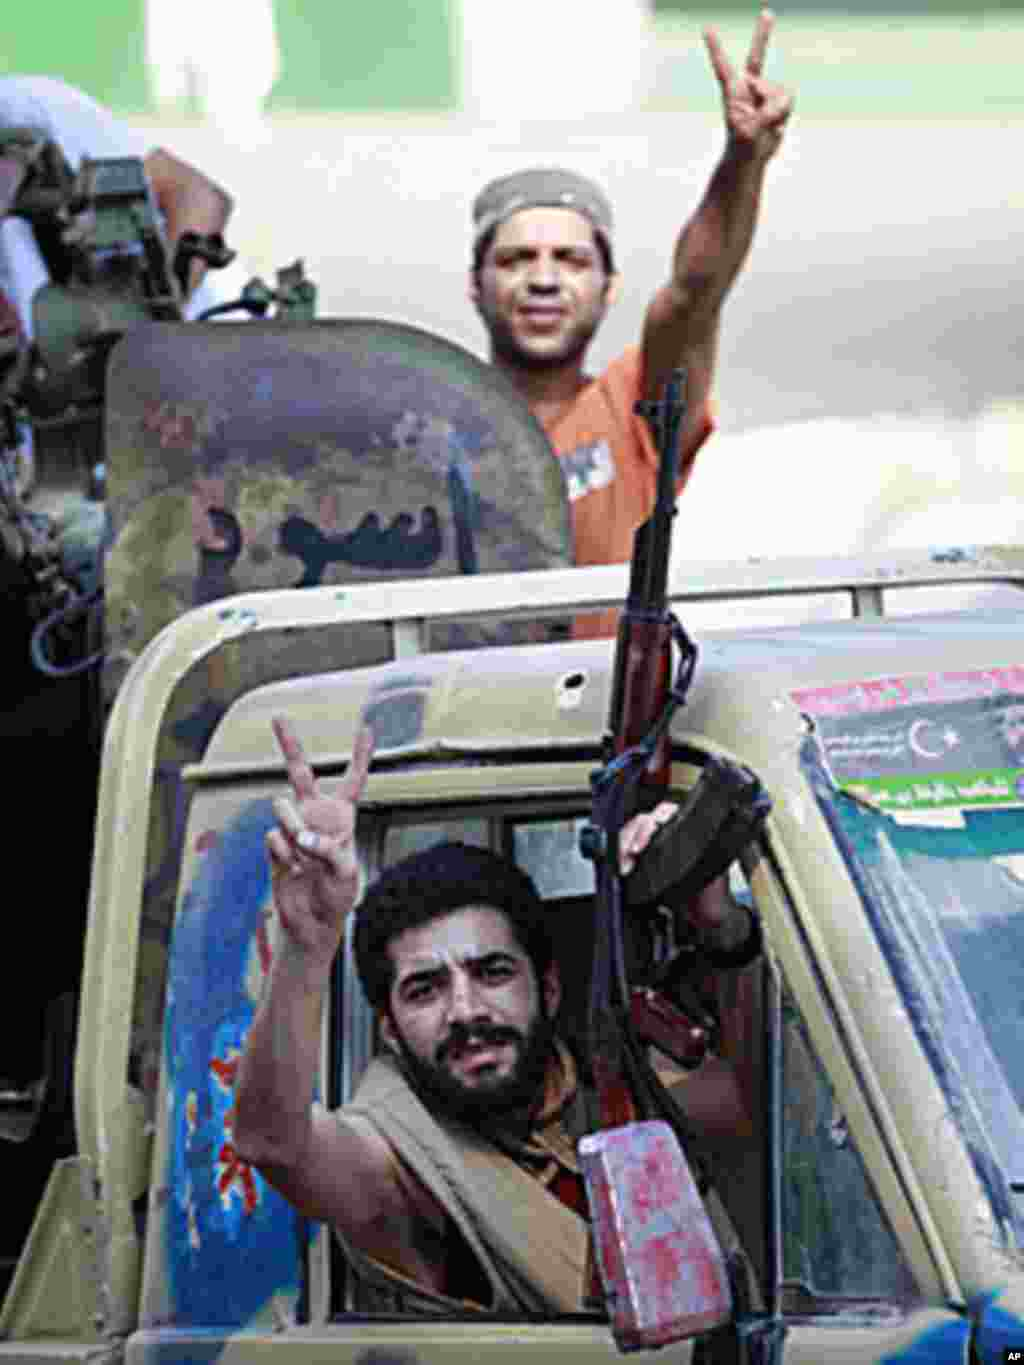 Libyan rebel fighters celebrate as they drive through Tripoli's Qarqarsh district, August 22, 2011. (Reuters)